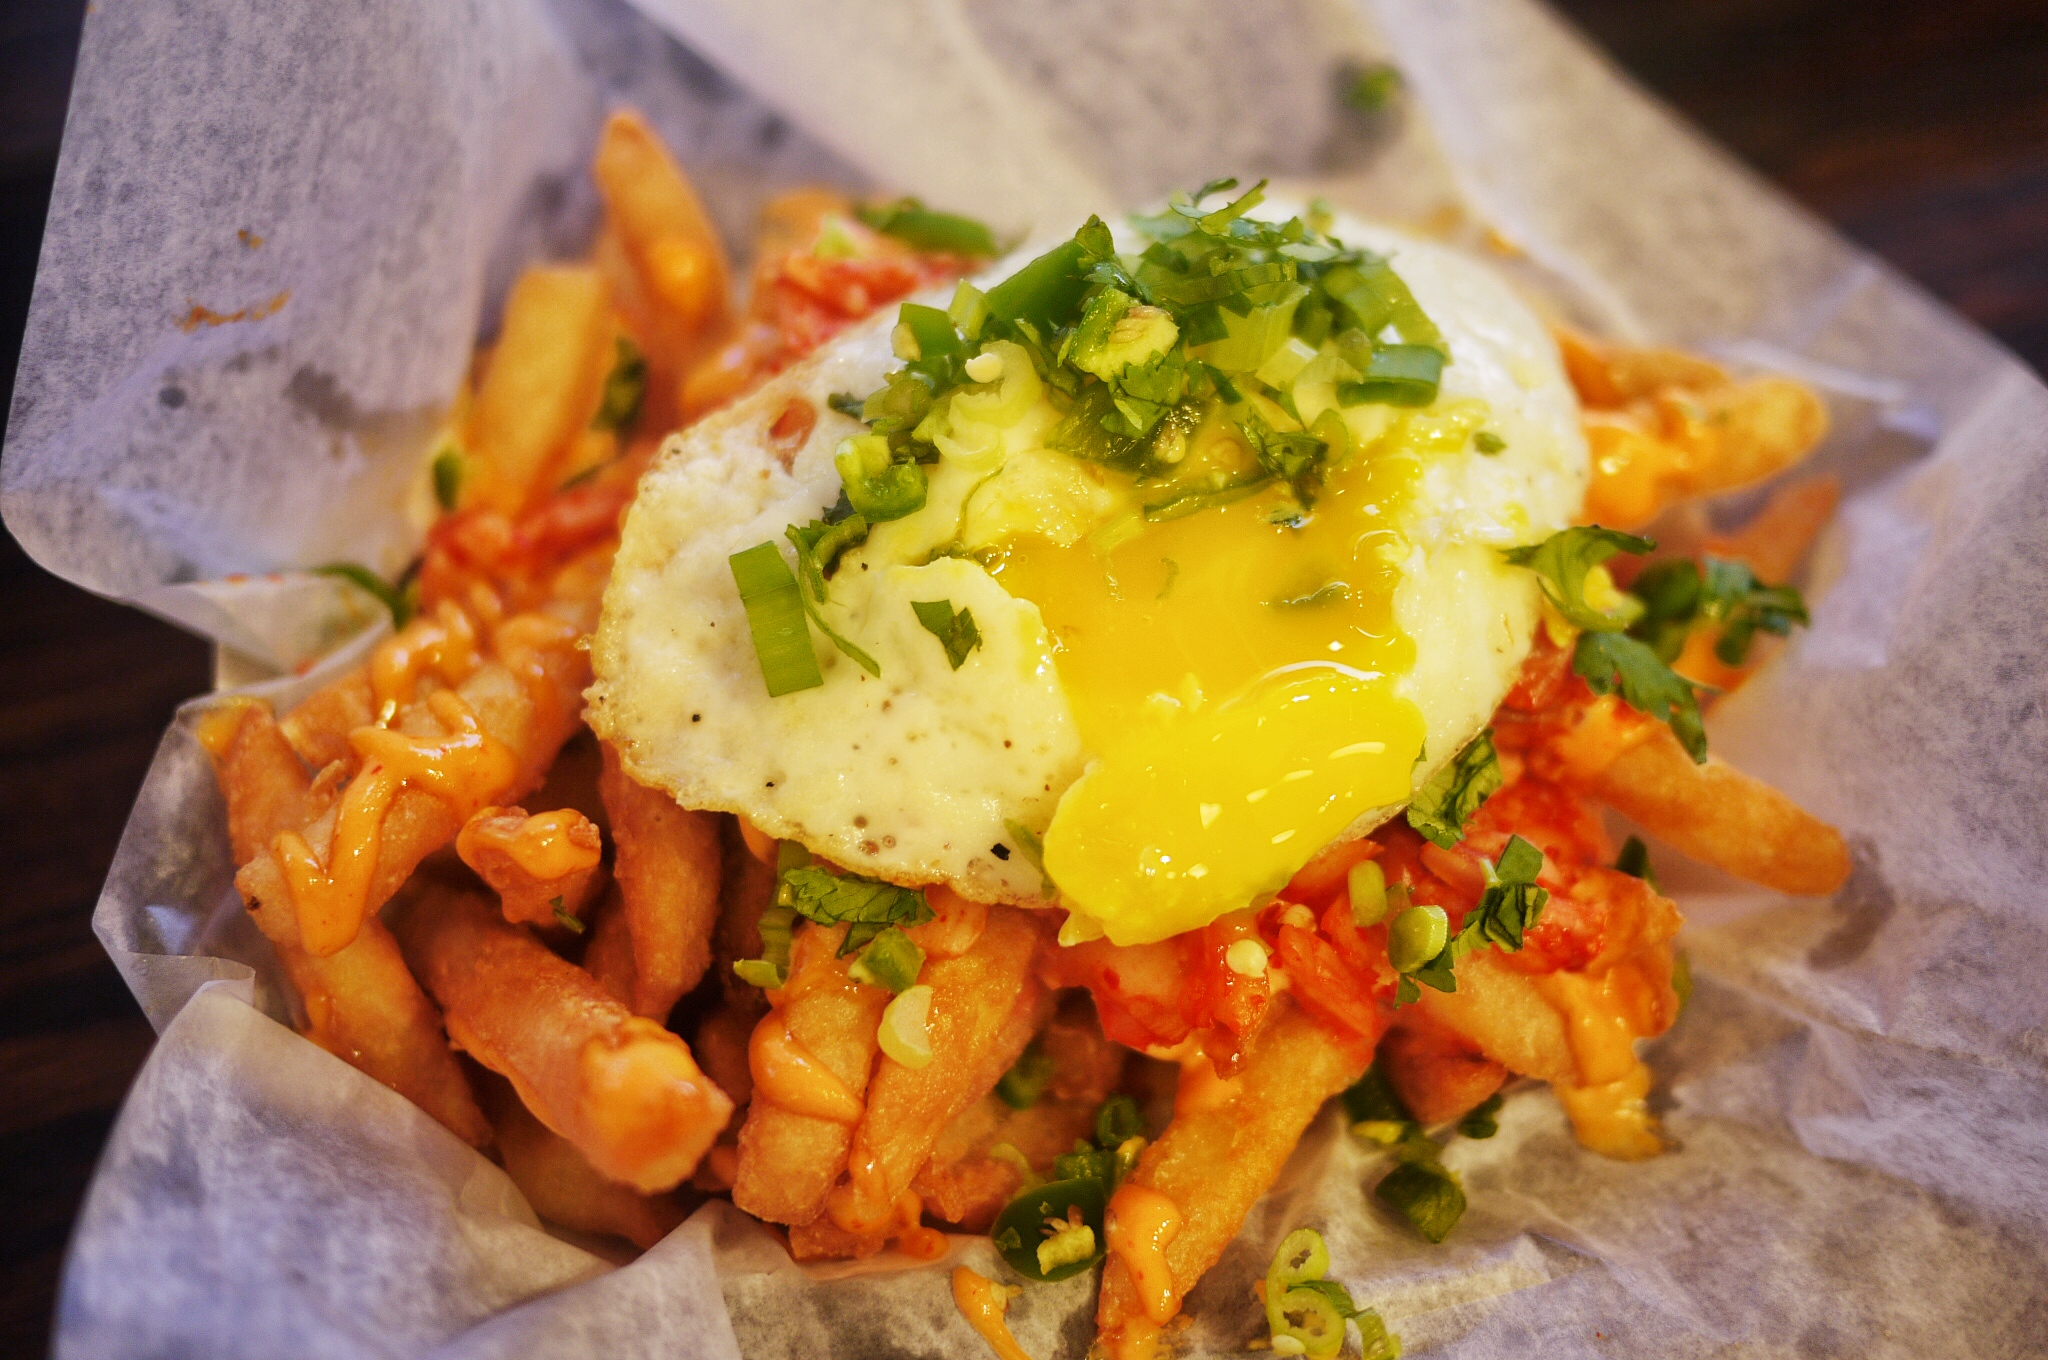 Loaded Kimchi Fries $5.99.  Seasoned and battered French fries topped with mild spicy mayo, mild kimchi, chopped scallions, cilantro and jalapenos, and then topped with fried runny egg. HELL YEAH THIS THING IS GOOD!The portion is enough for sharing up to 3 people, so worth the price.